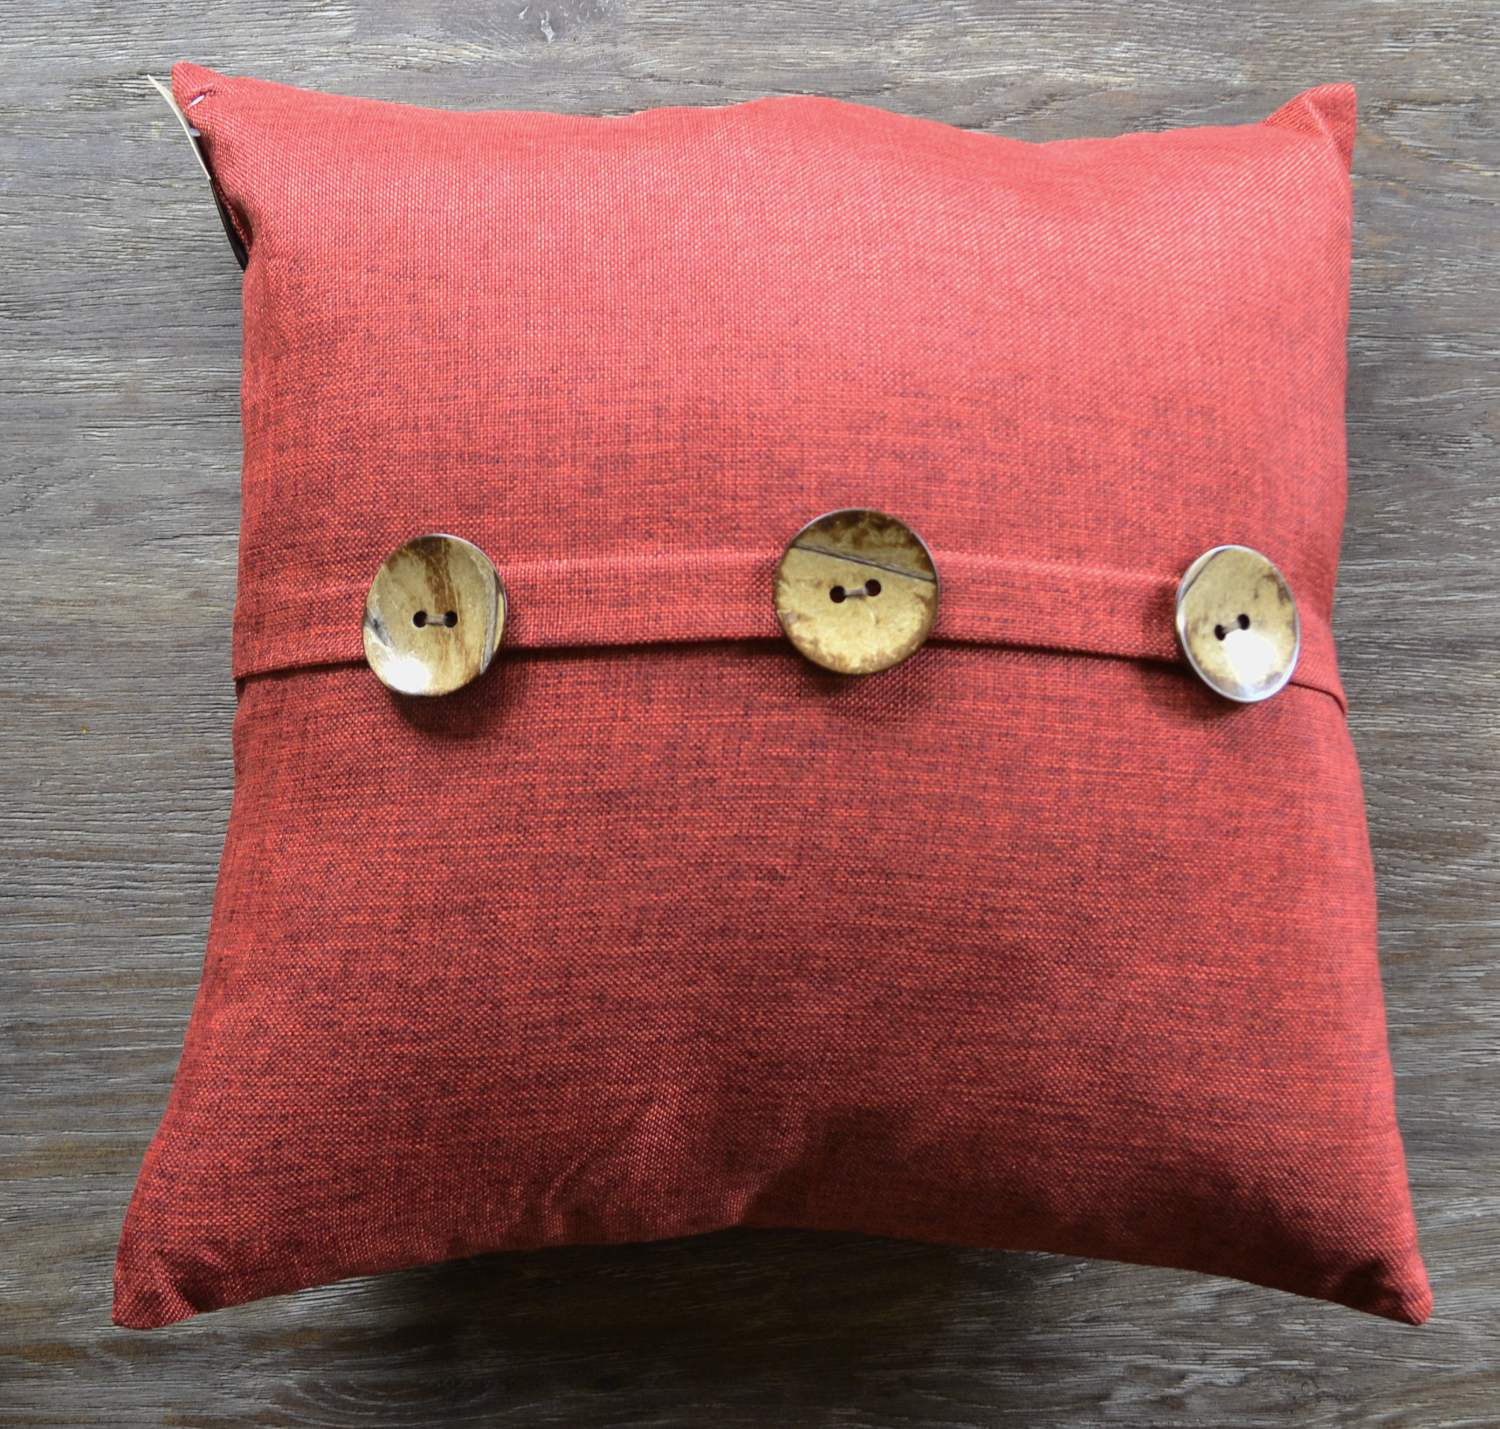 Texturel Red Decorative Pillows